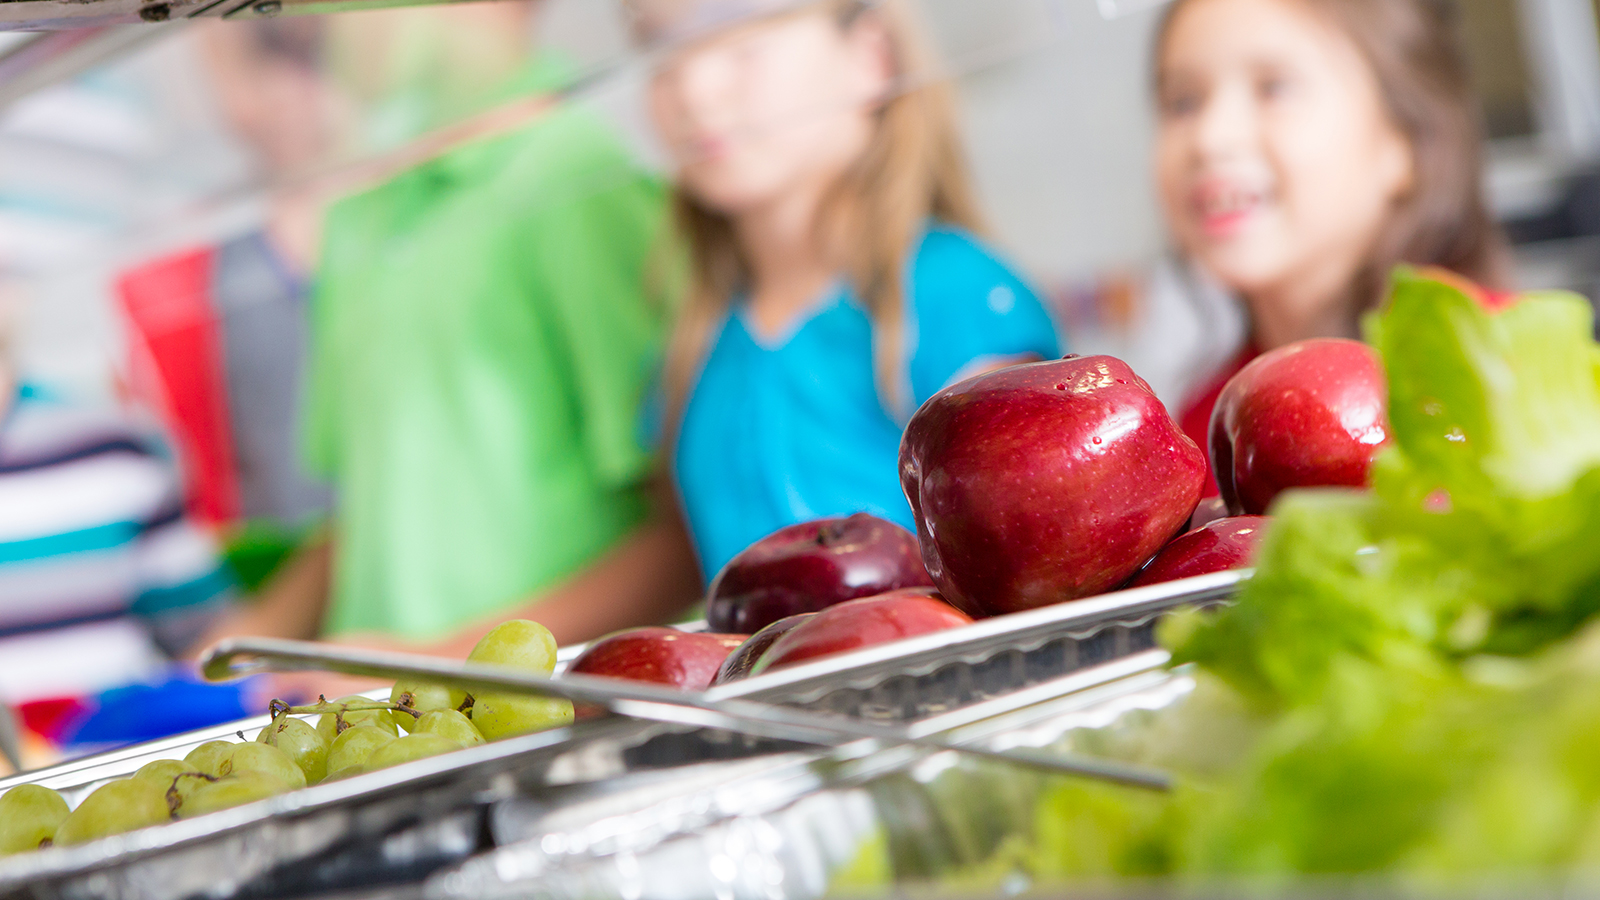 Stock image of children being served food in a cafeteria line.